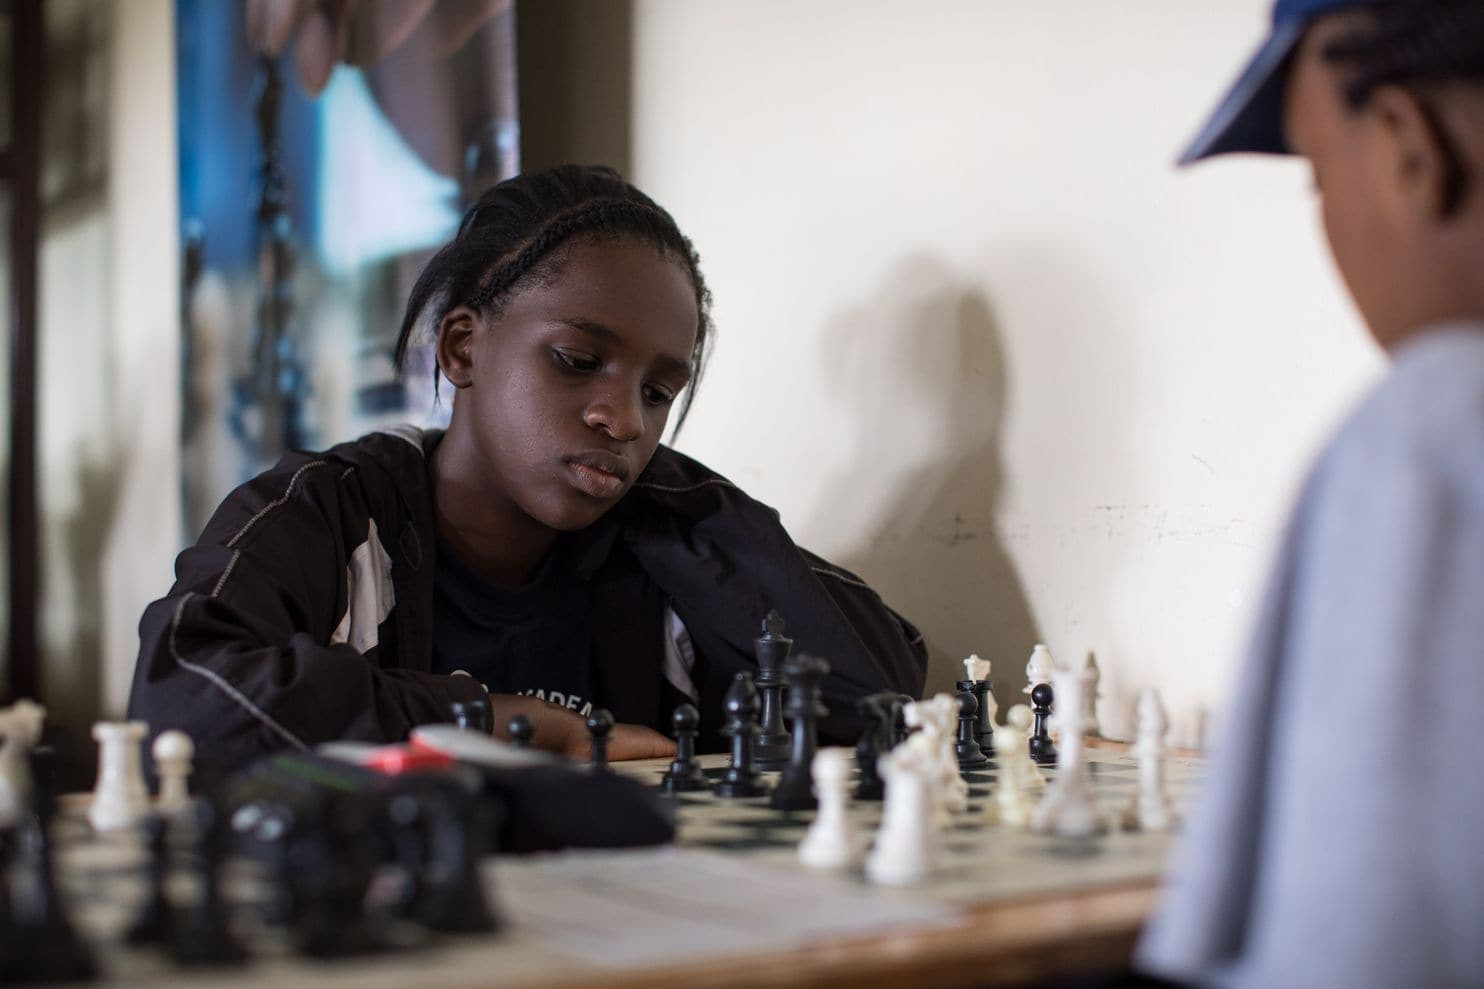 Sarah Momanyi plays a friendly game of chess at KCB Sports Club in Nairobi. The 13-year-old has become one of the most promising chess players in Kenya, attracting invitations from global championships as far as China. (Sarah Waiswa for The Washington Post)